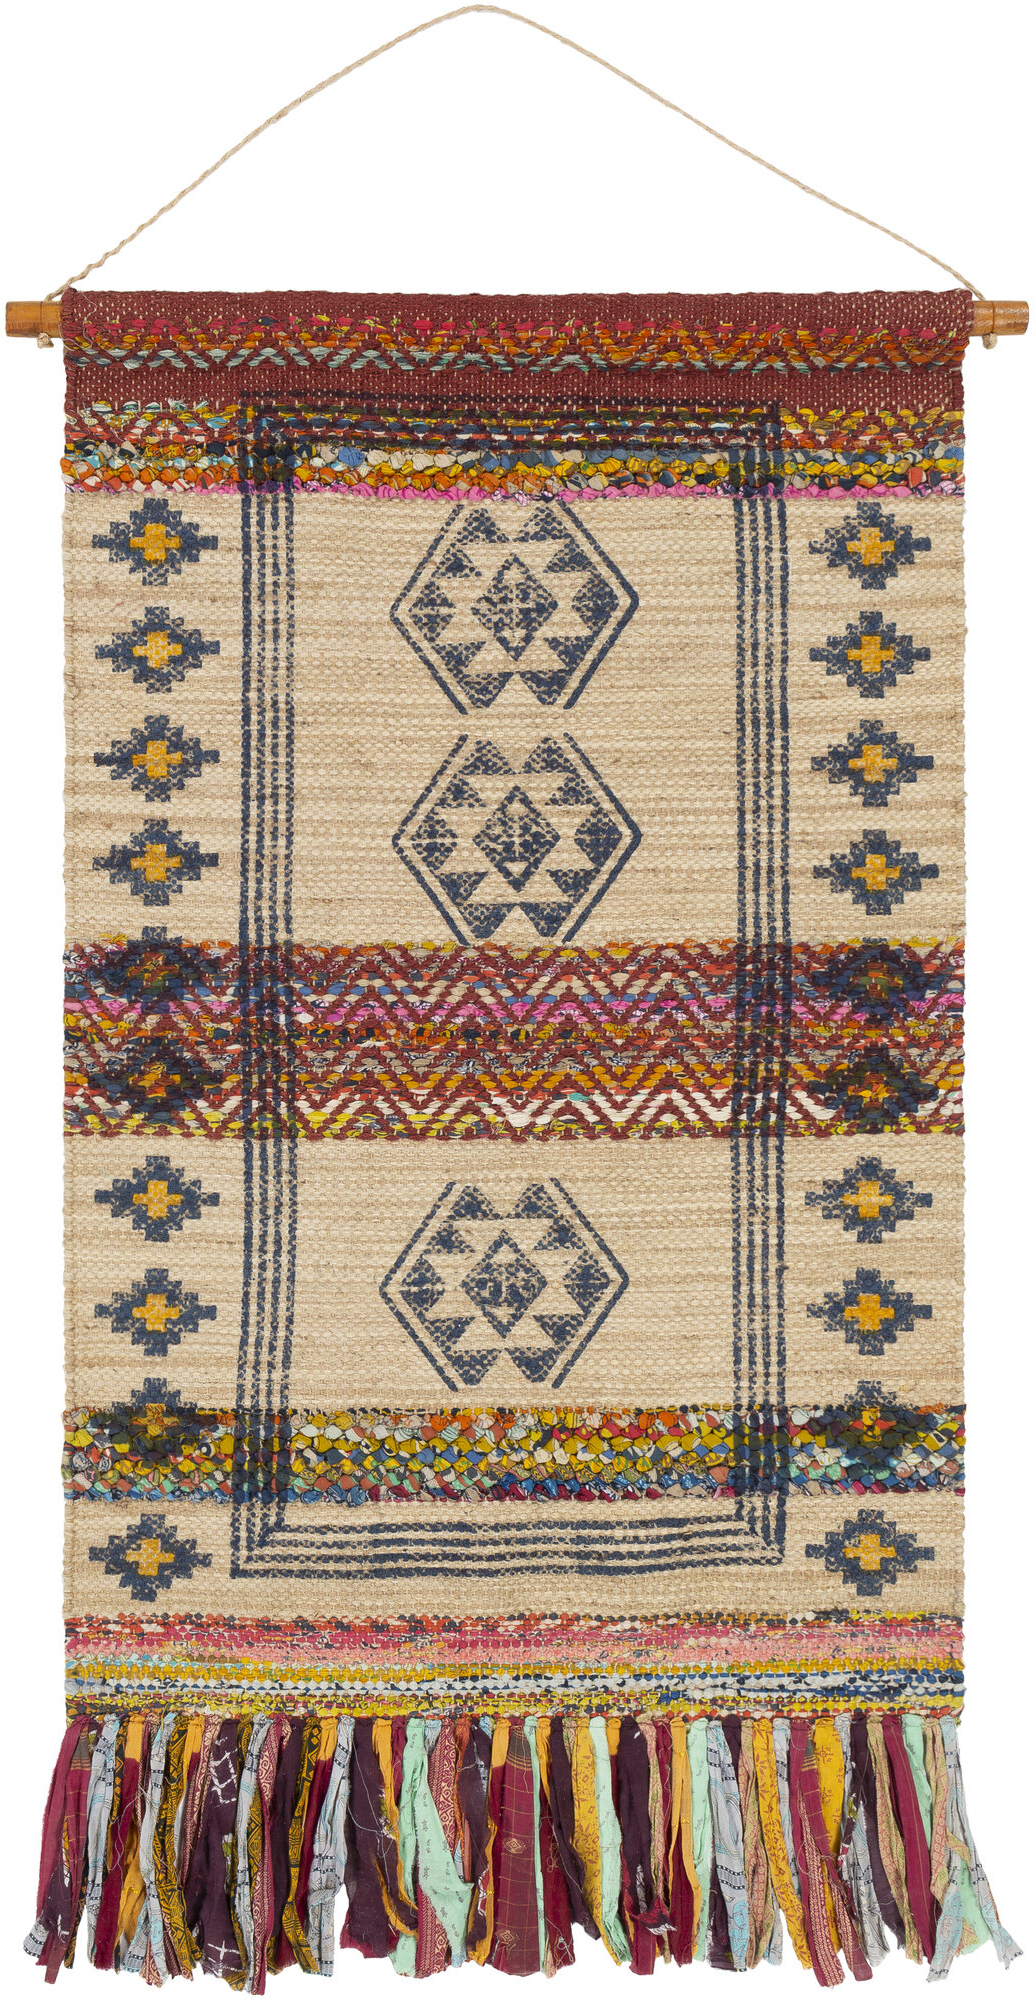 Featured Photo of Blended Fabric Ranier Wall Hangings With Hanging Accessories Included